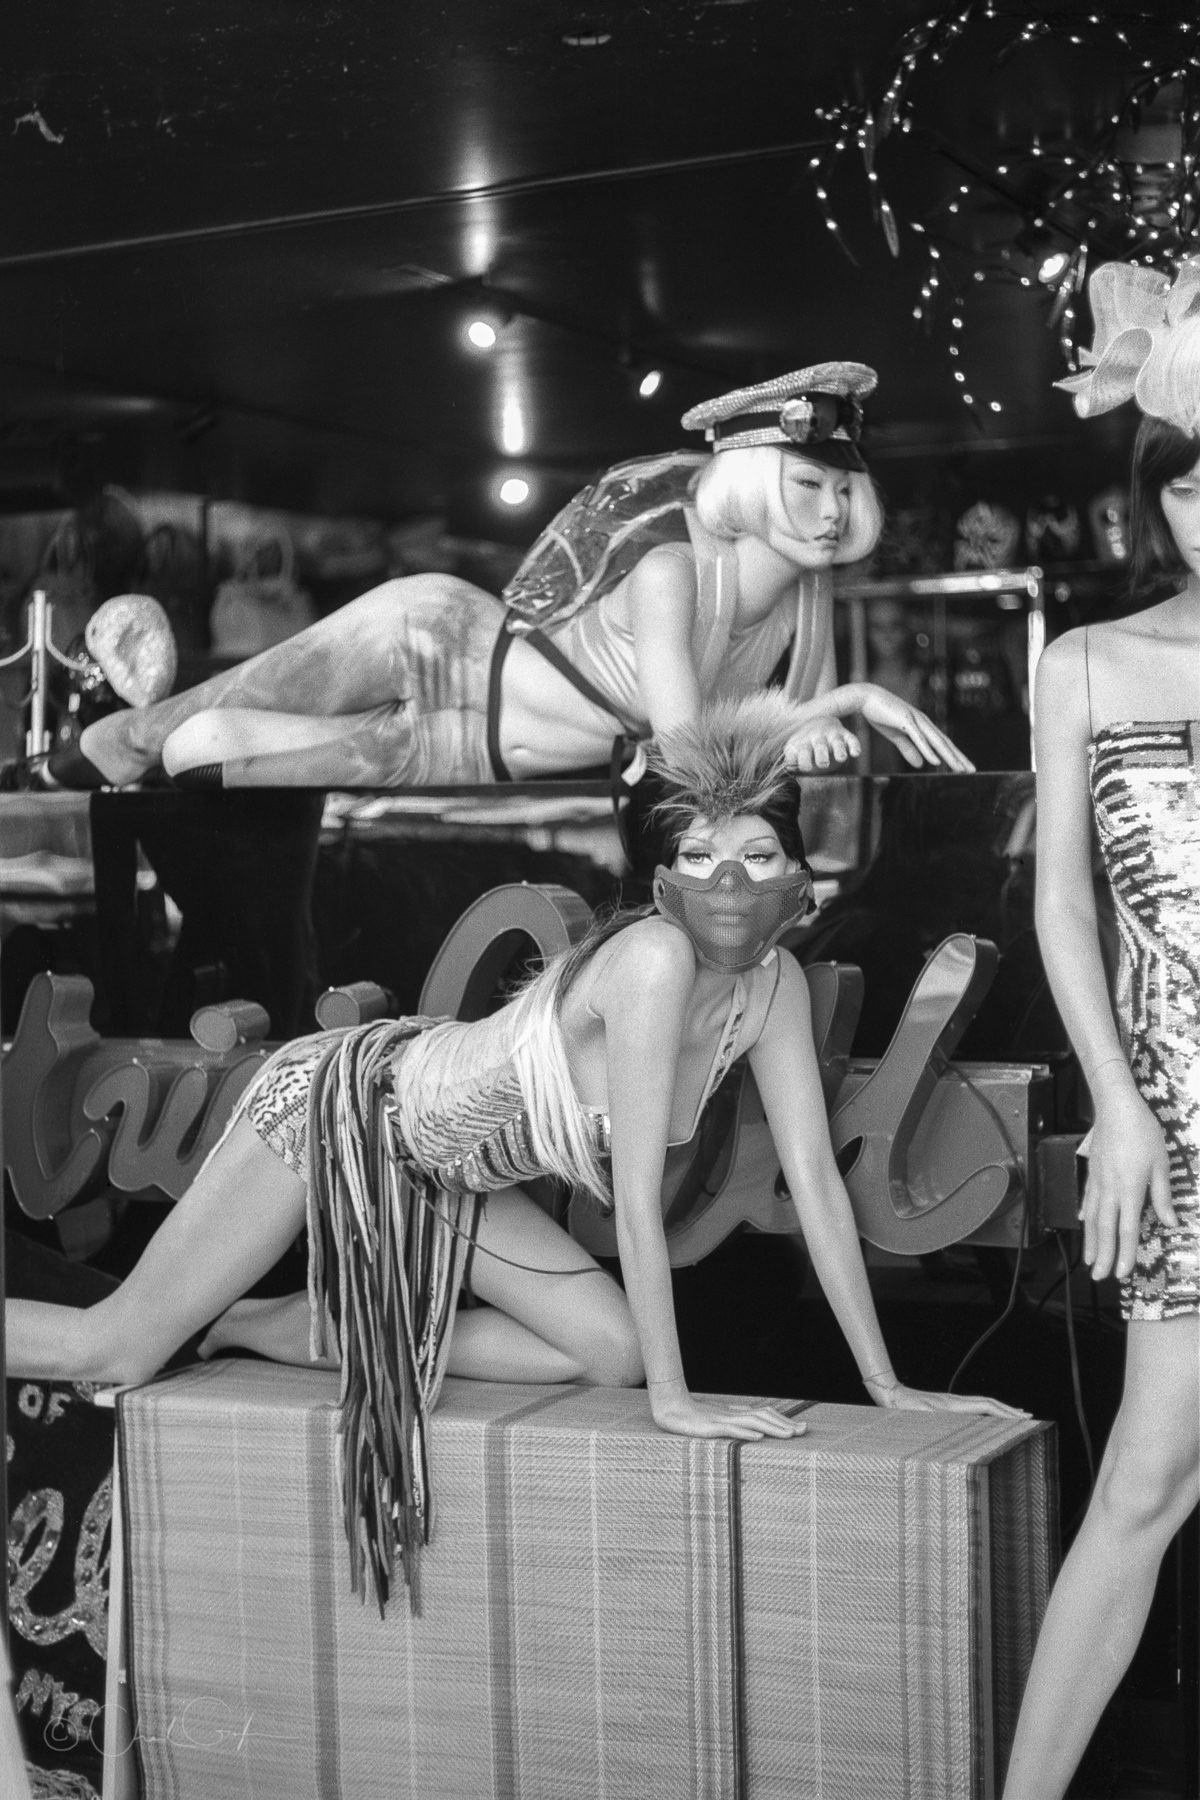 Two Sexy Mannequins by Chad Gayle (Image)